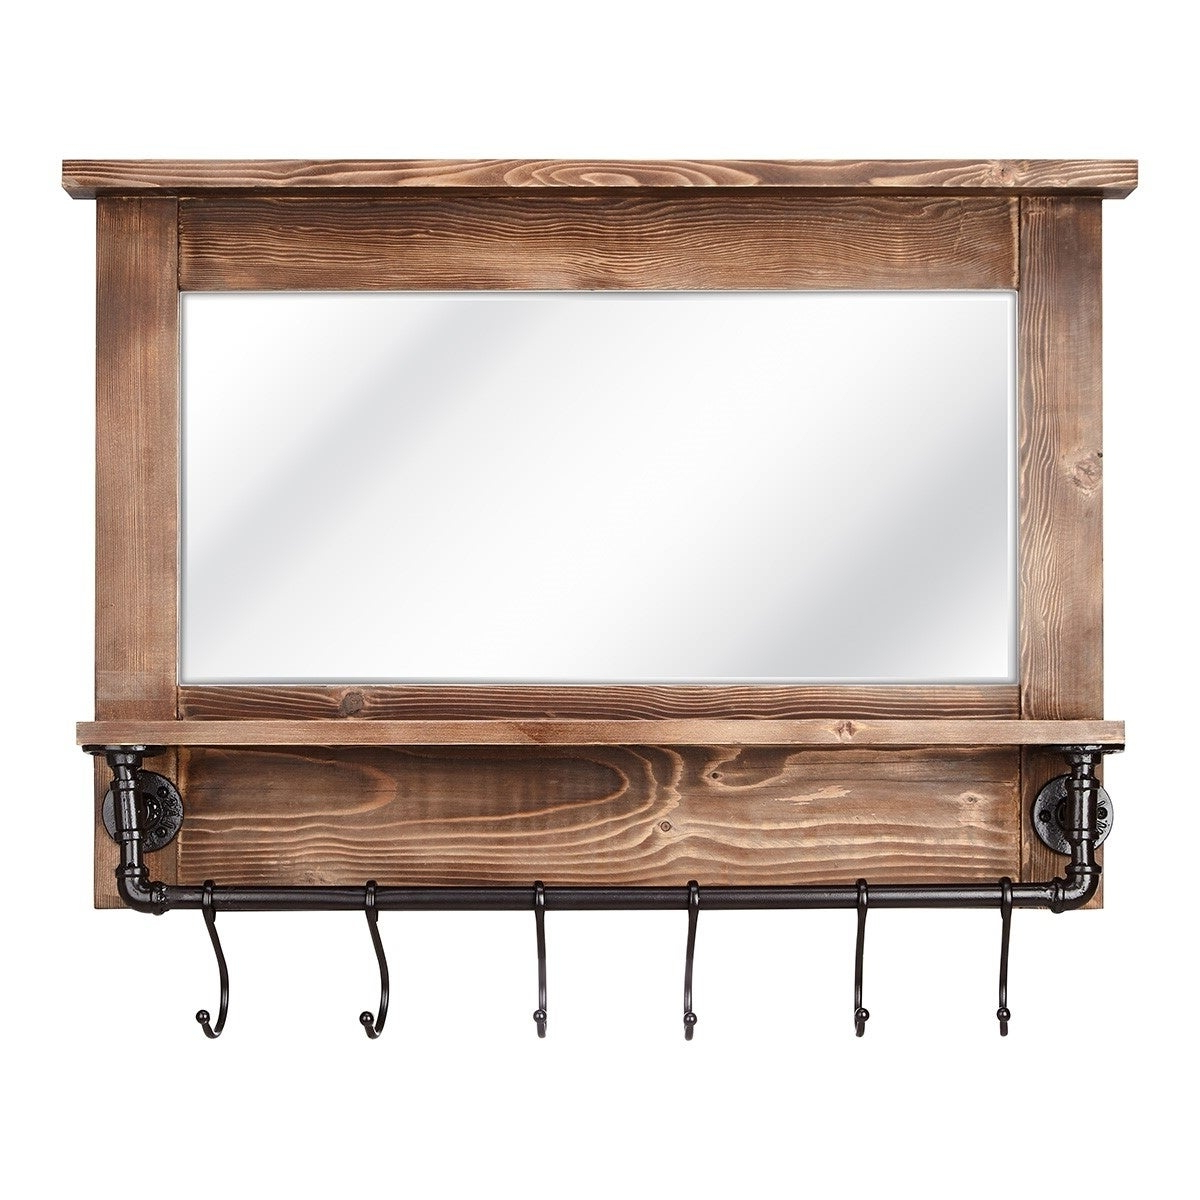 Recent Imax Afia Brown Wood Frame Wall Mirror With Shelf And Hooks Within Wall Mirrors With Shelf And Hooks (View 11 of 20)